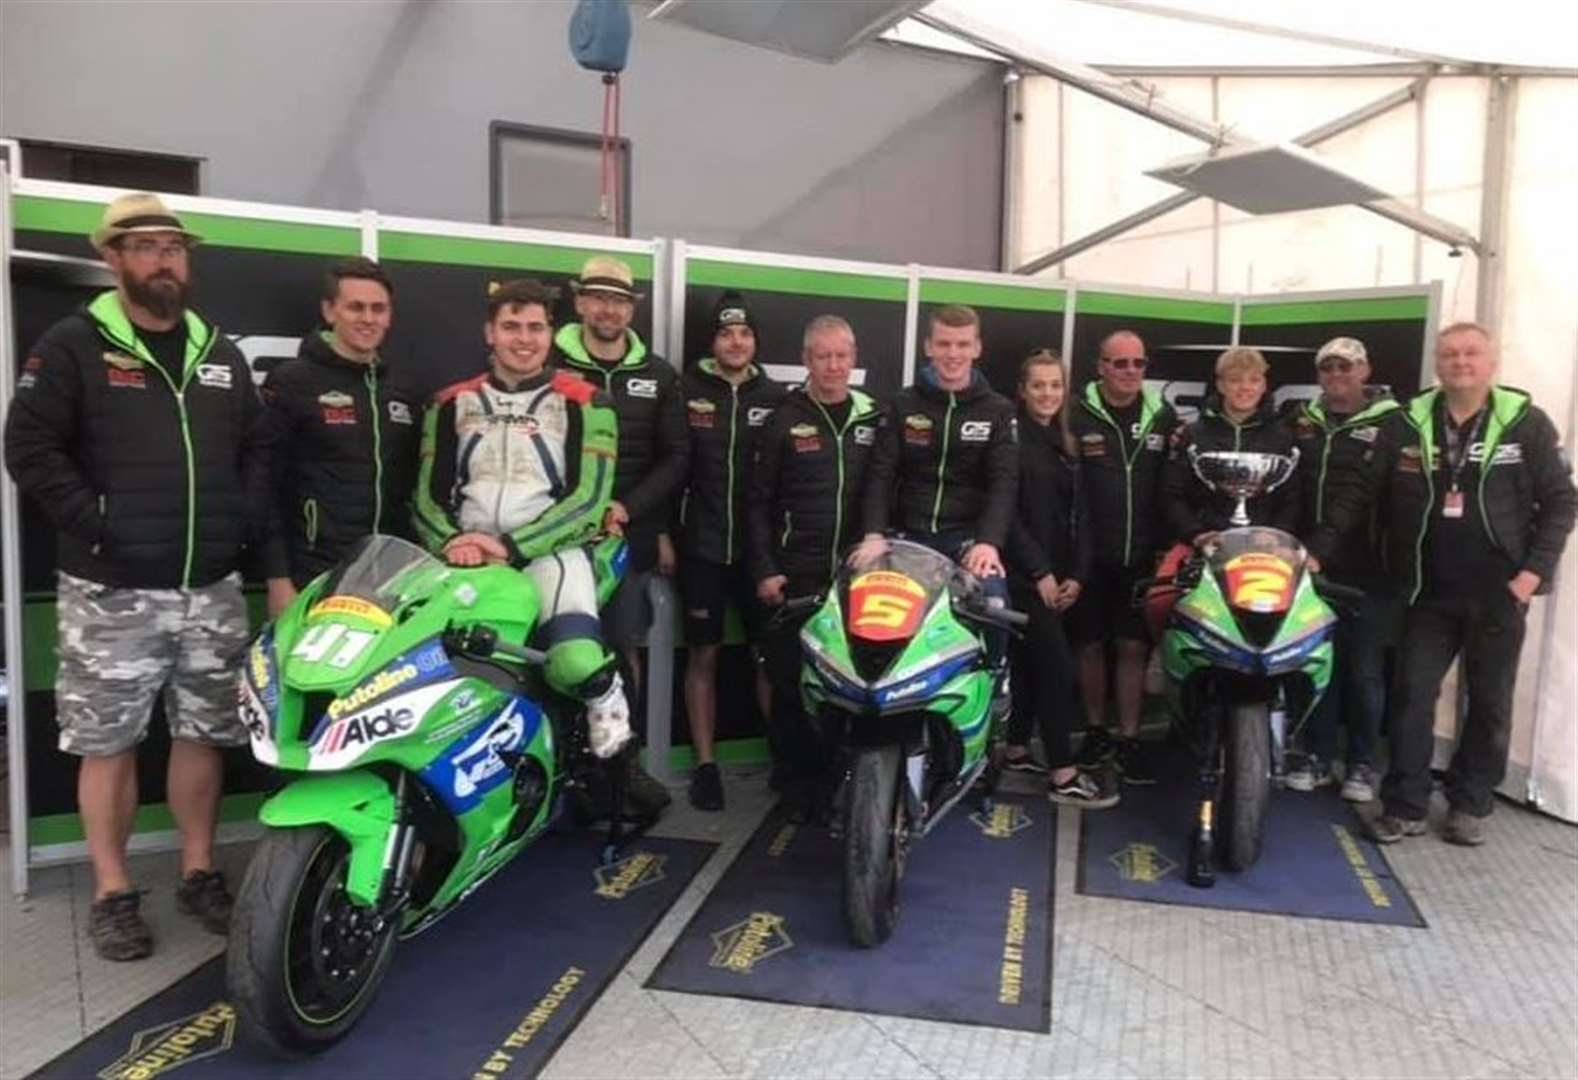 MOTORCYCLING: Trio sign up with G&S Kawasaki for 2020 season